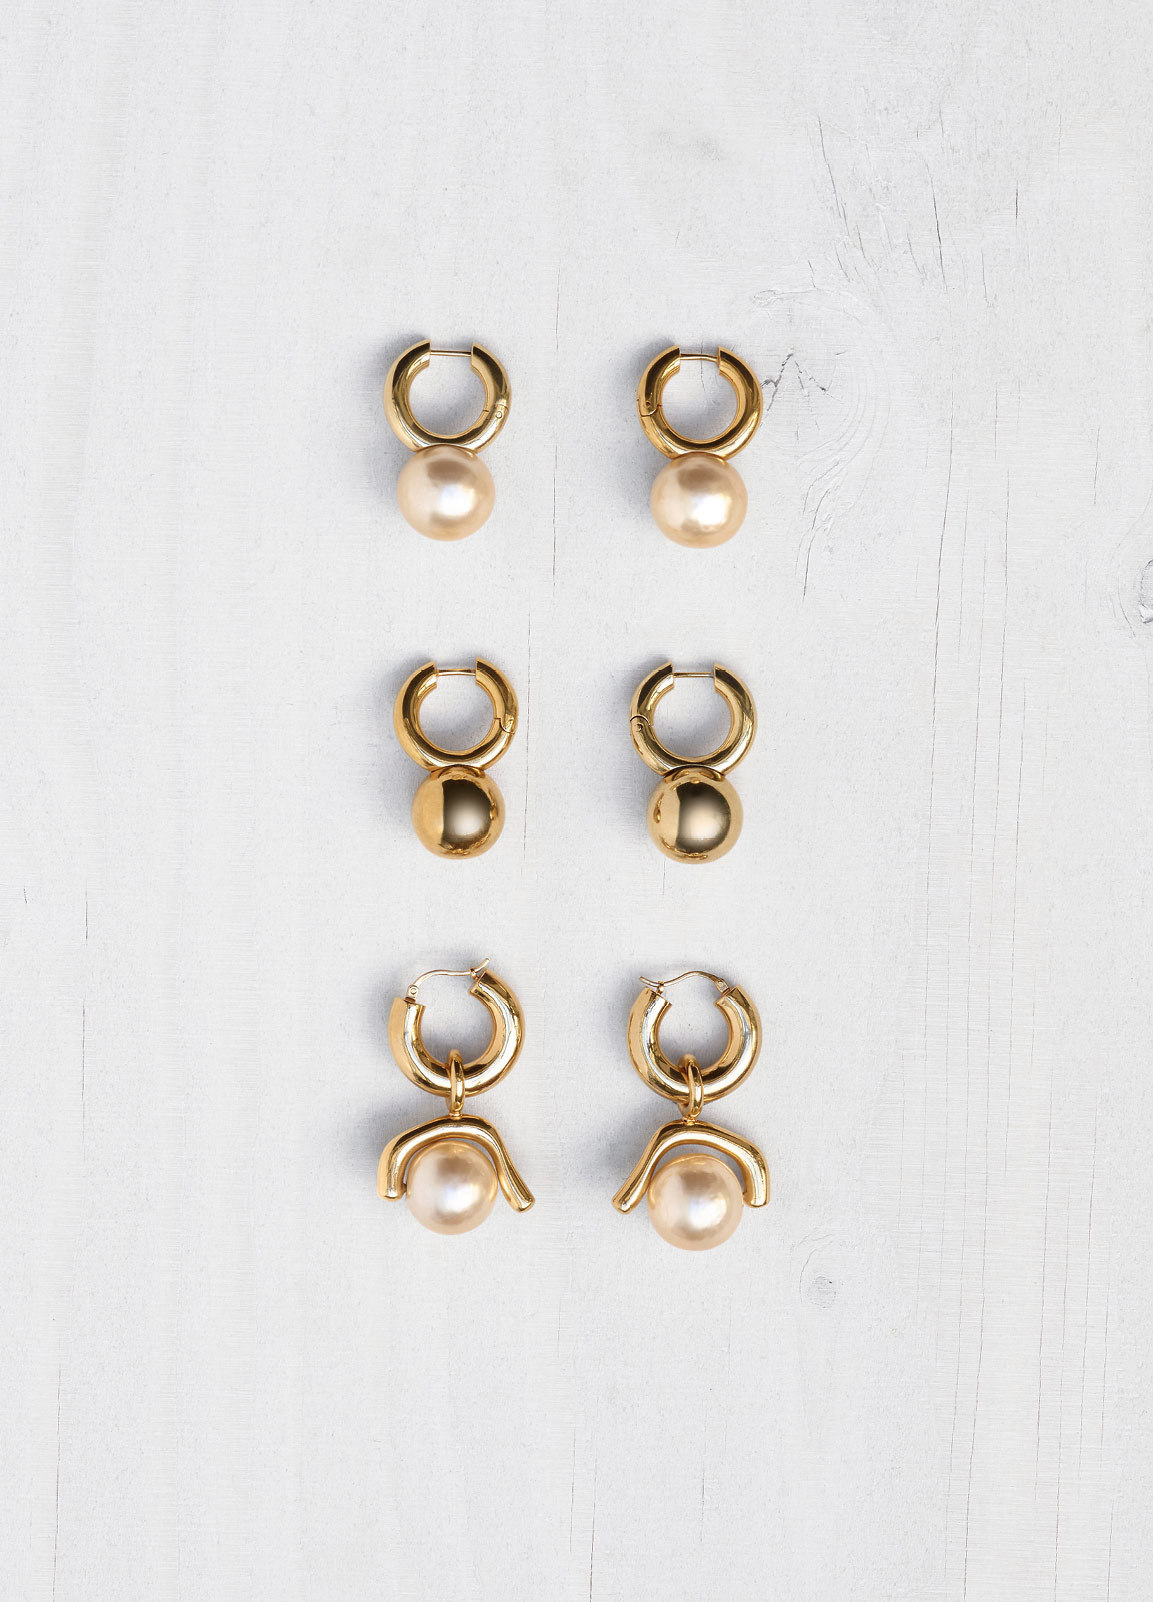 【17aw NEW】CELINE_women/DOT LOOP PEARLEARRINGS/ドットピアス